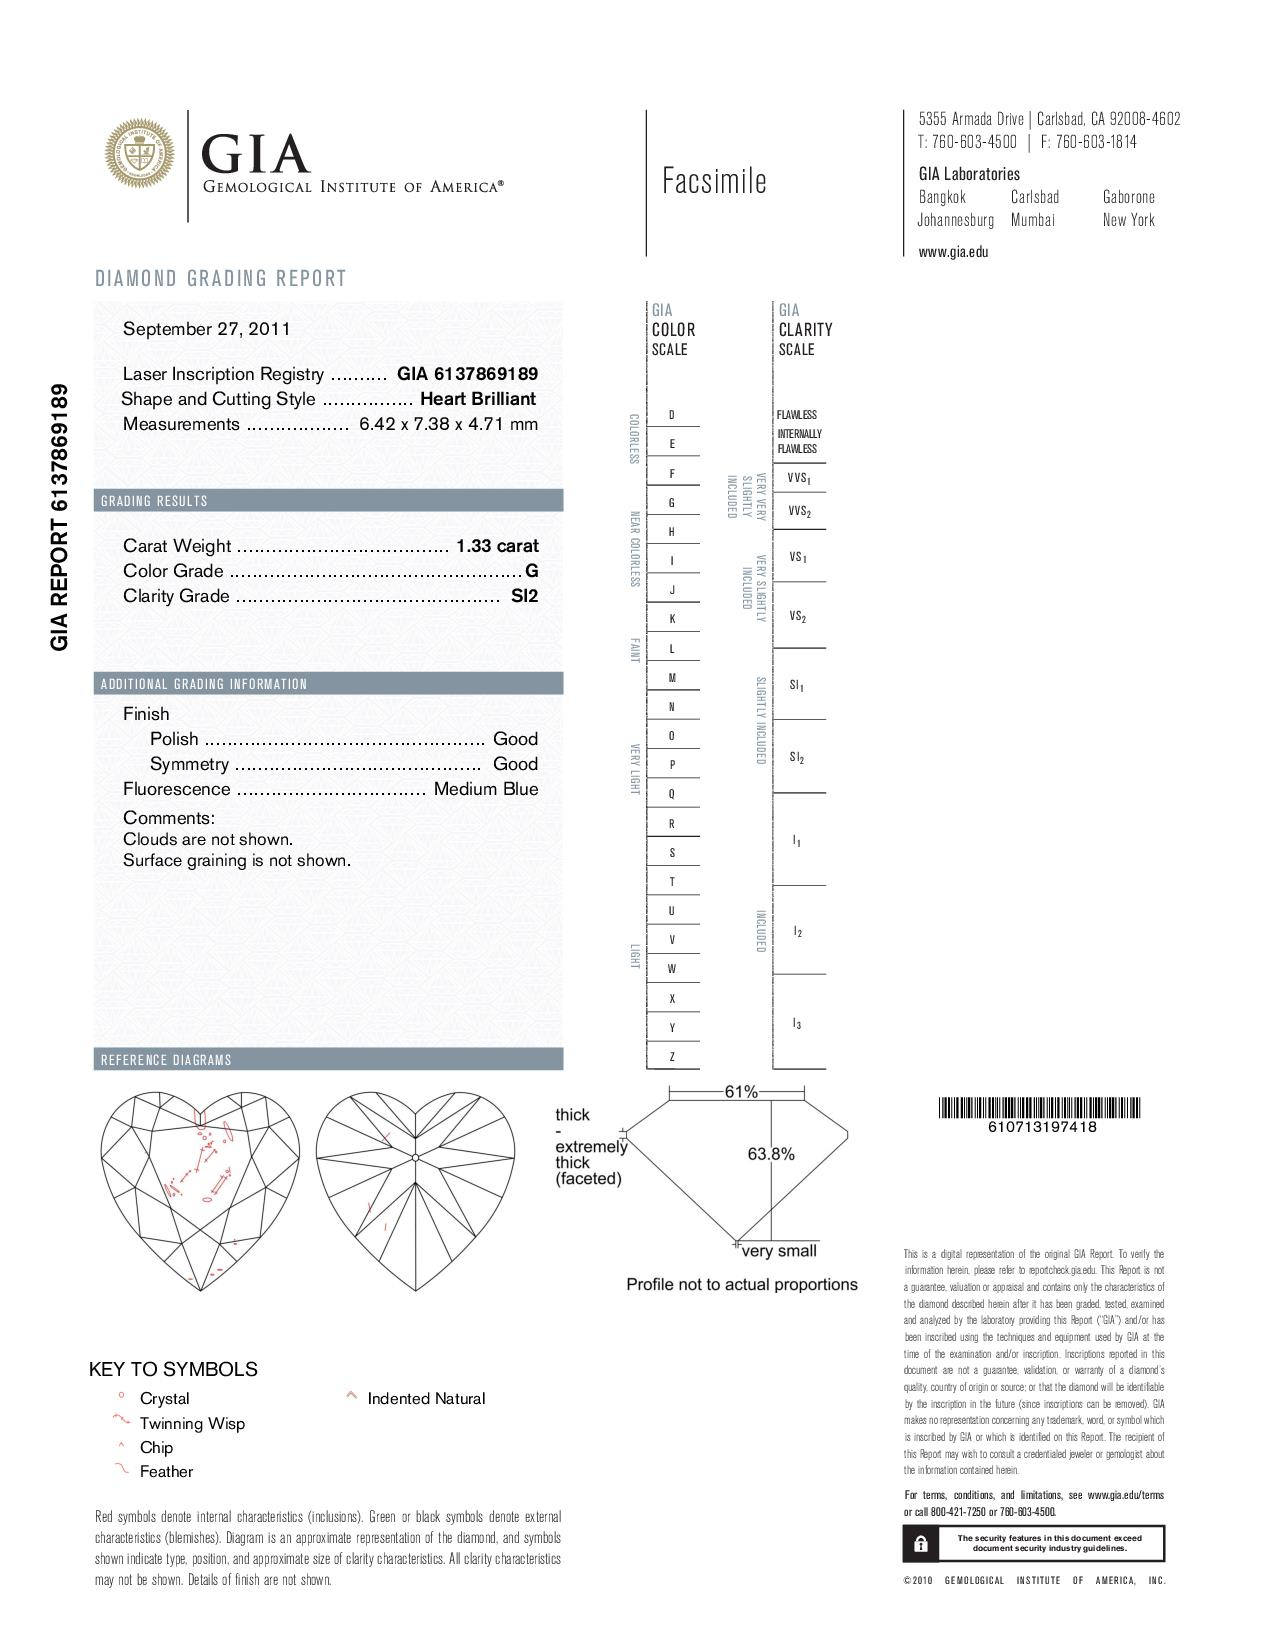 This is a 1.33 carat heart shape, G color, SI2 clarity natural diamond accompanied by a GIA grading report.